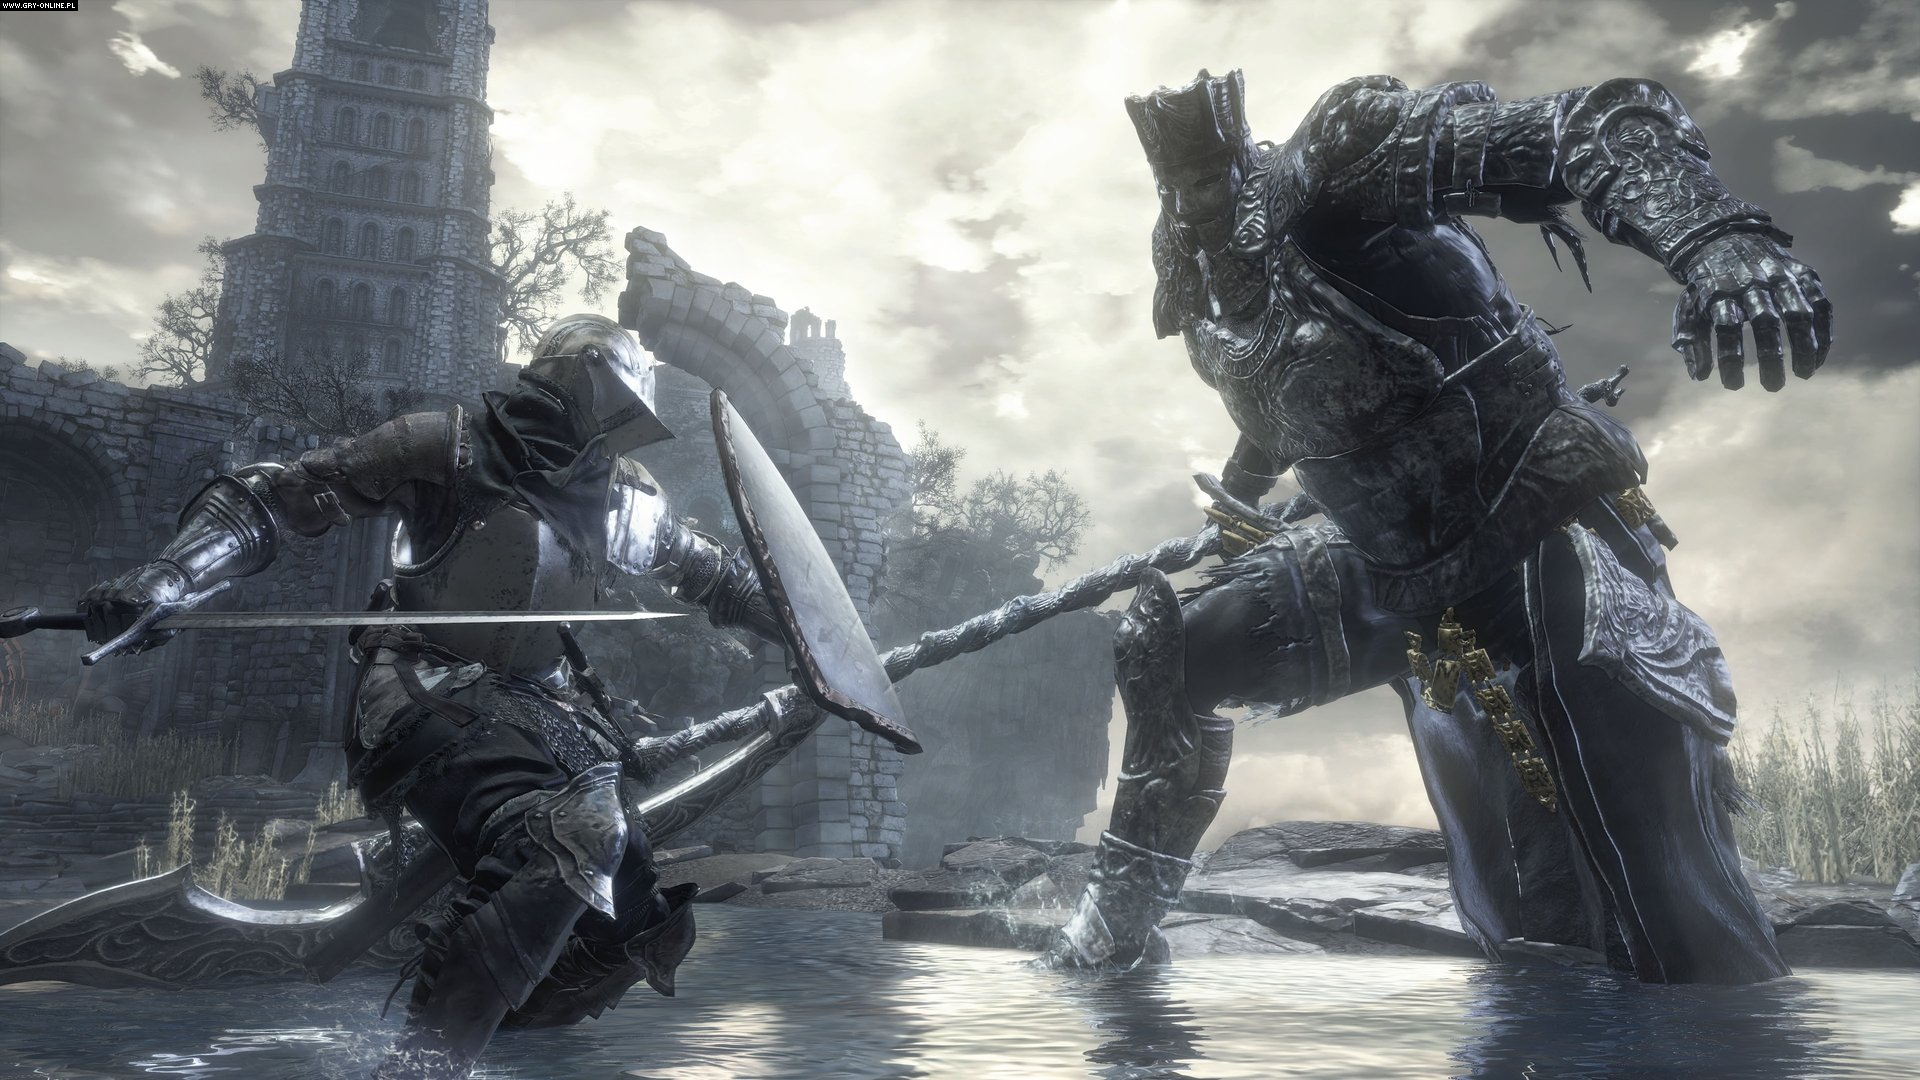 Dark Souls III PC, PS4, XONE Games Image 18/48, From Software, Bandai Namco Entertainment